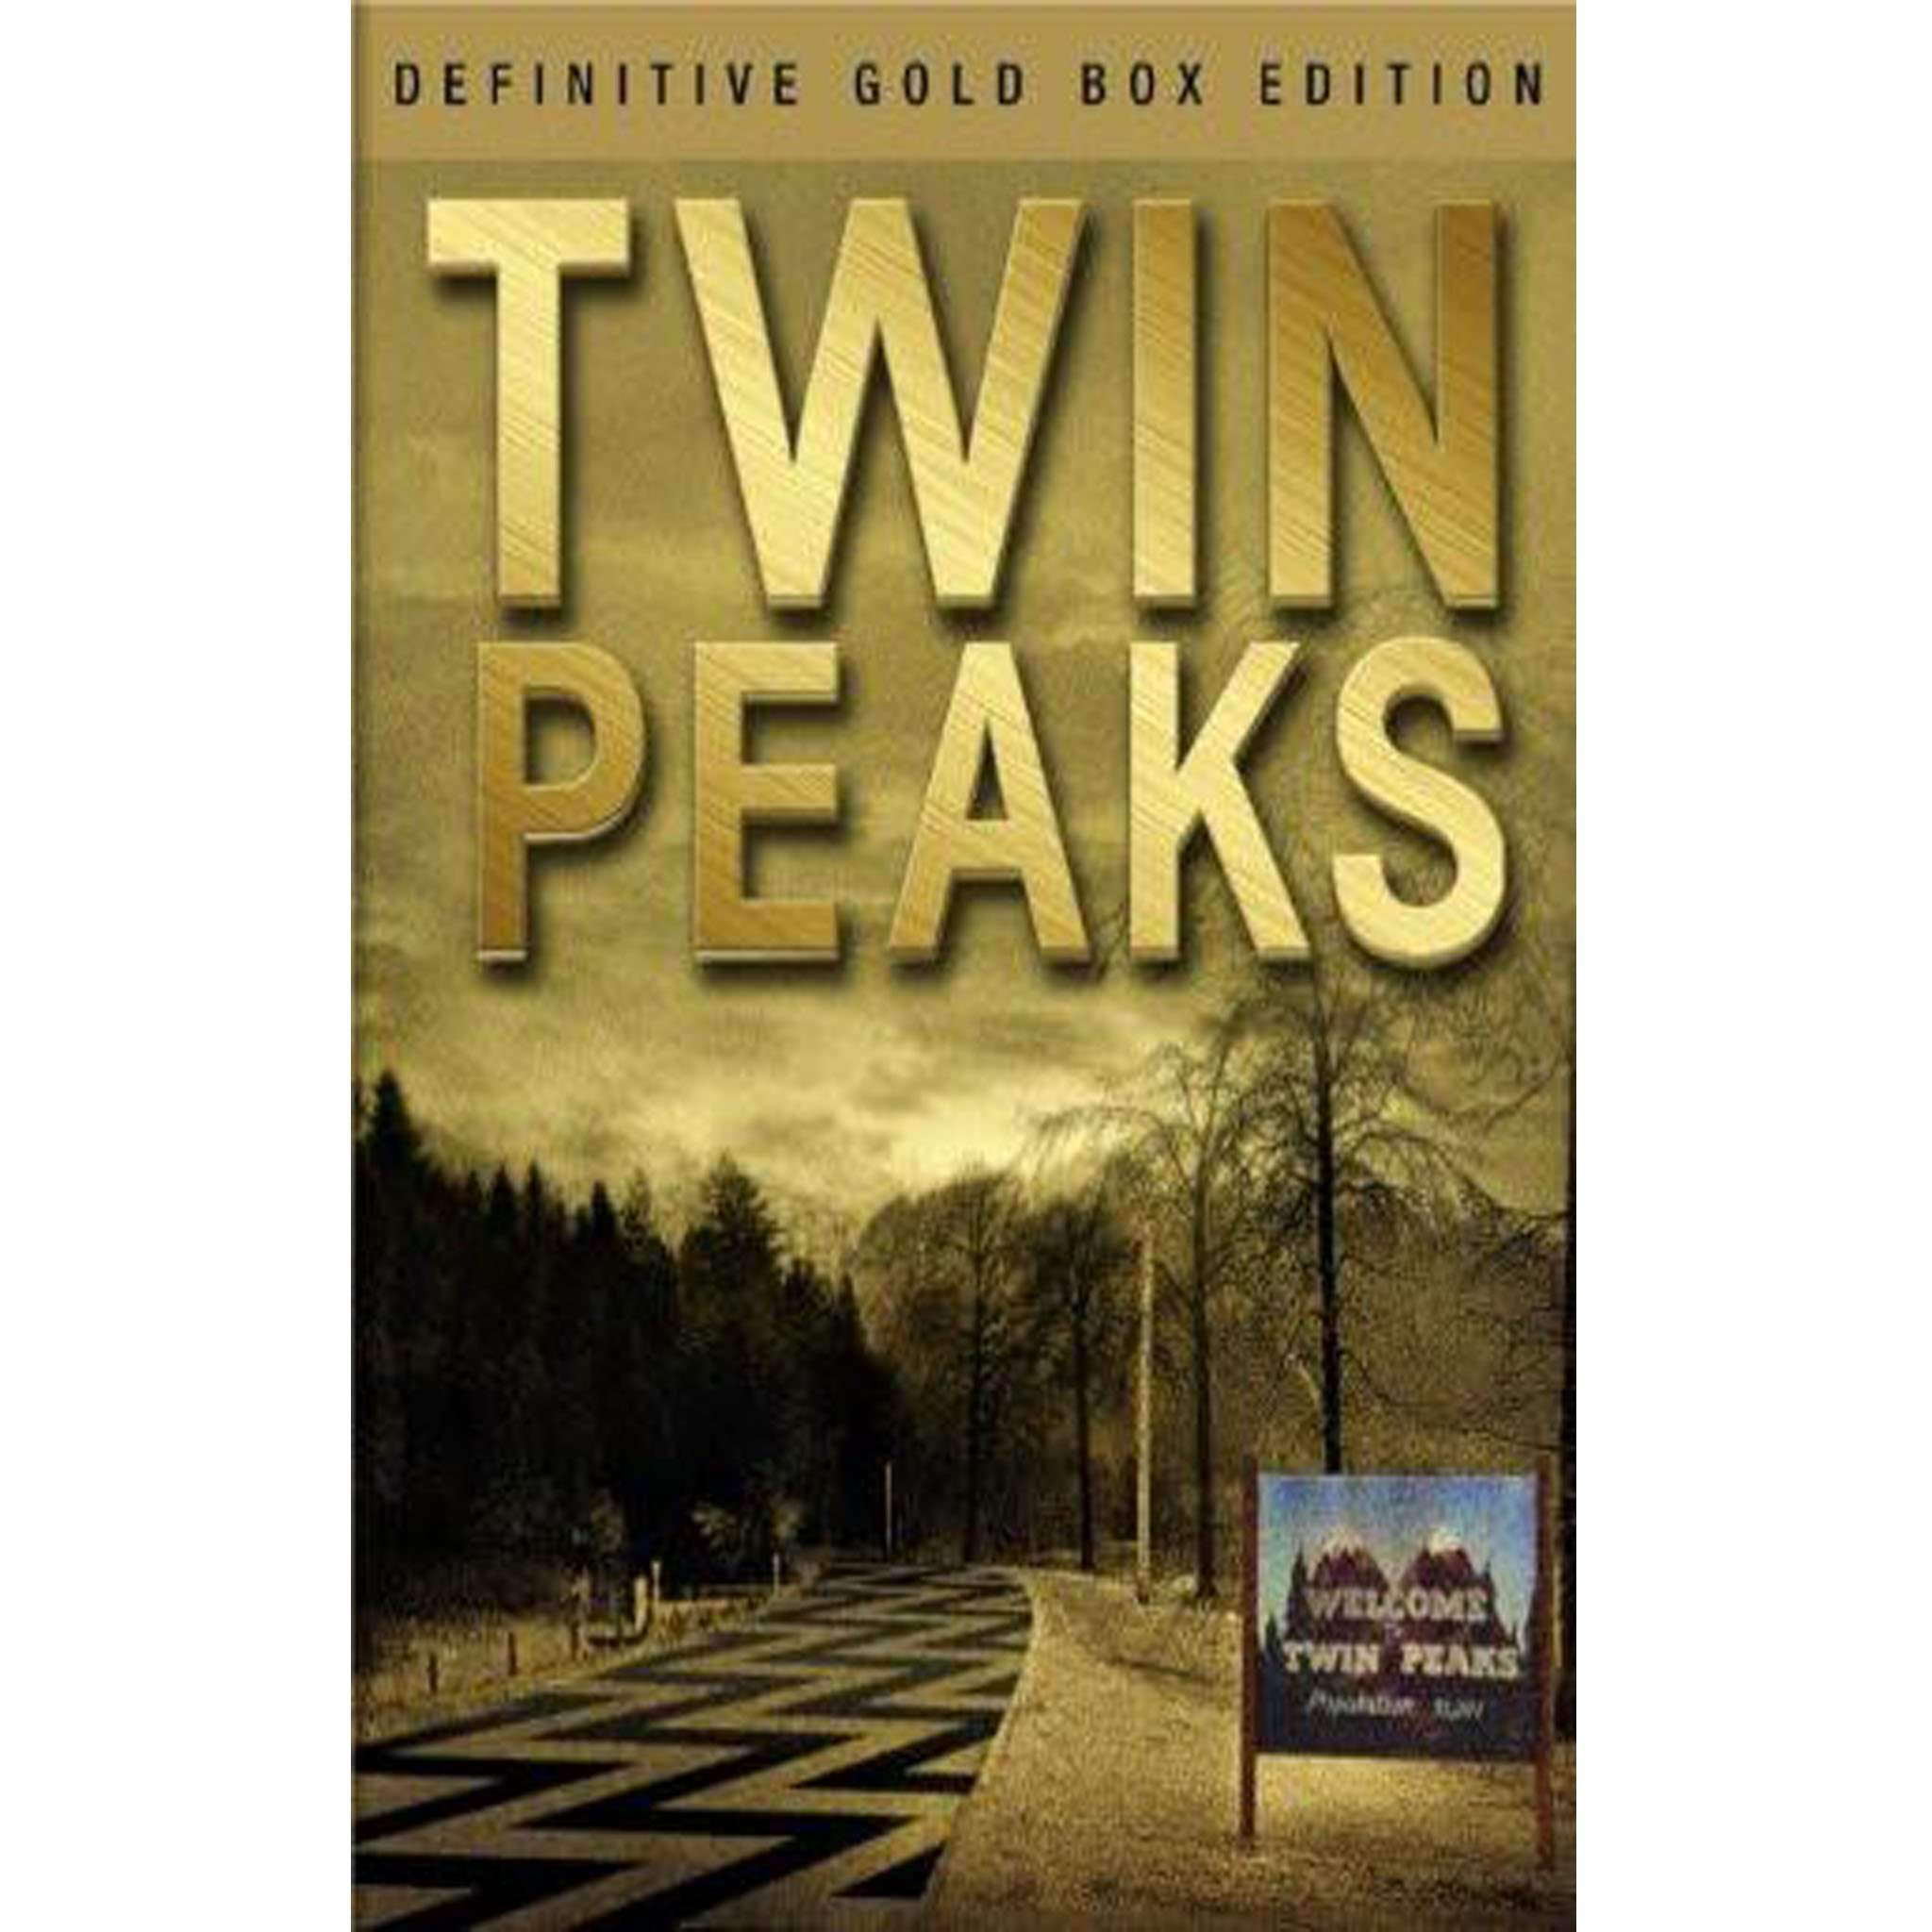 Twin Peaks The Complete Series (DVD) Paramount Home Entertainment DVDs & Blu-ray Discs > DVDs > Box Sets